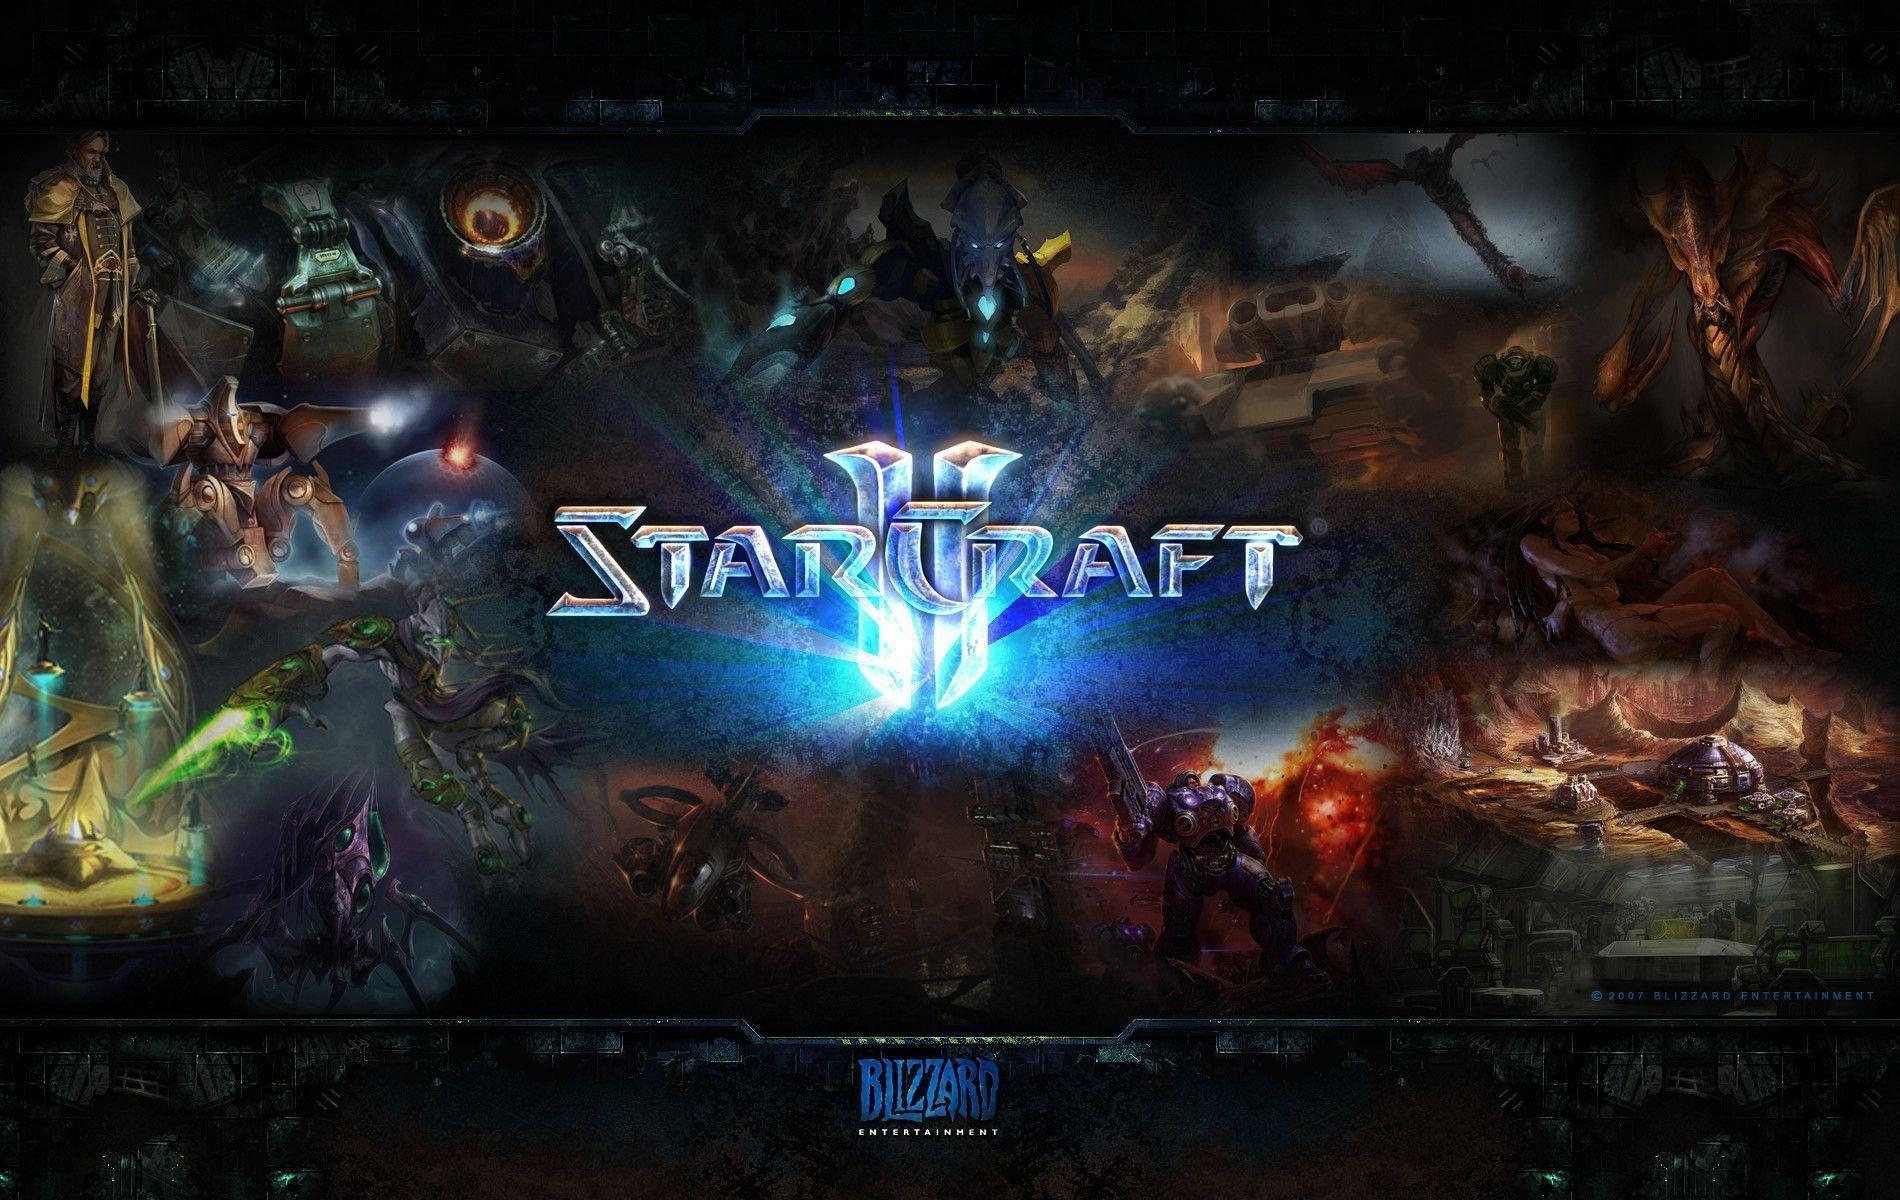 starcraft wallpaper - photo #44